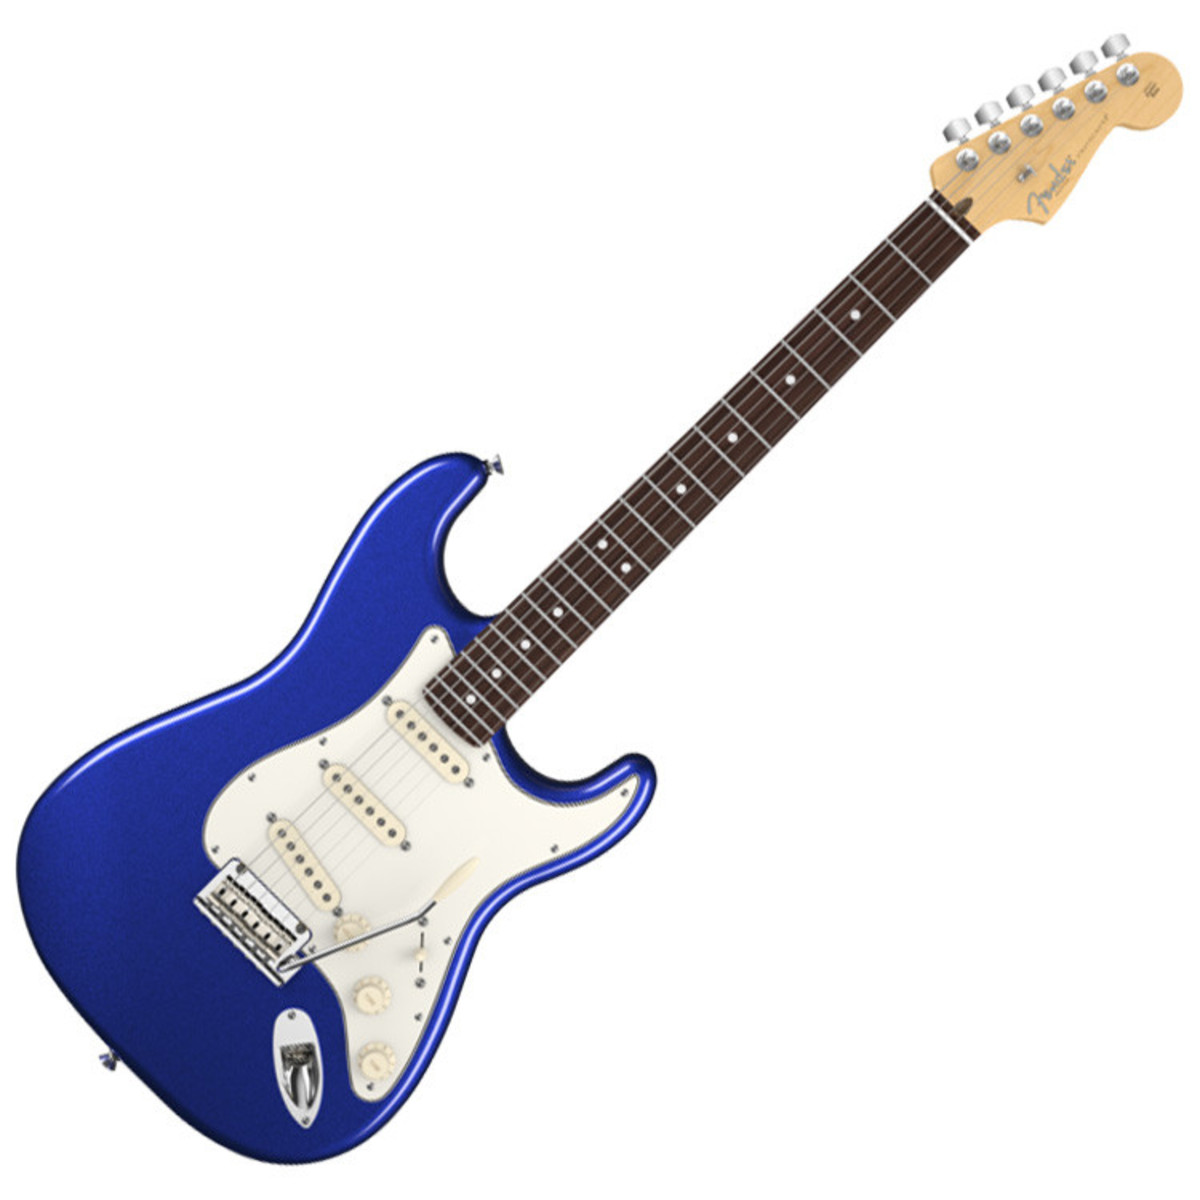 fender american standard stratocaster electric guitar mystic blue na. Black Bedroom Furniture Sets. Home Design Ideas